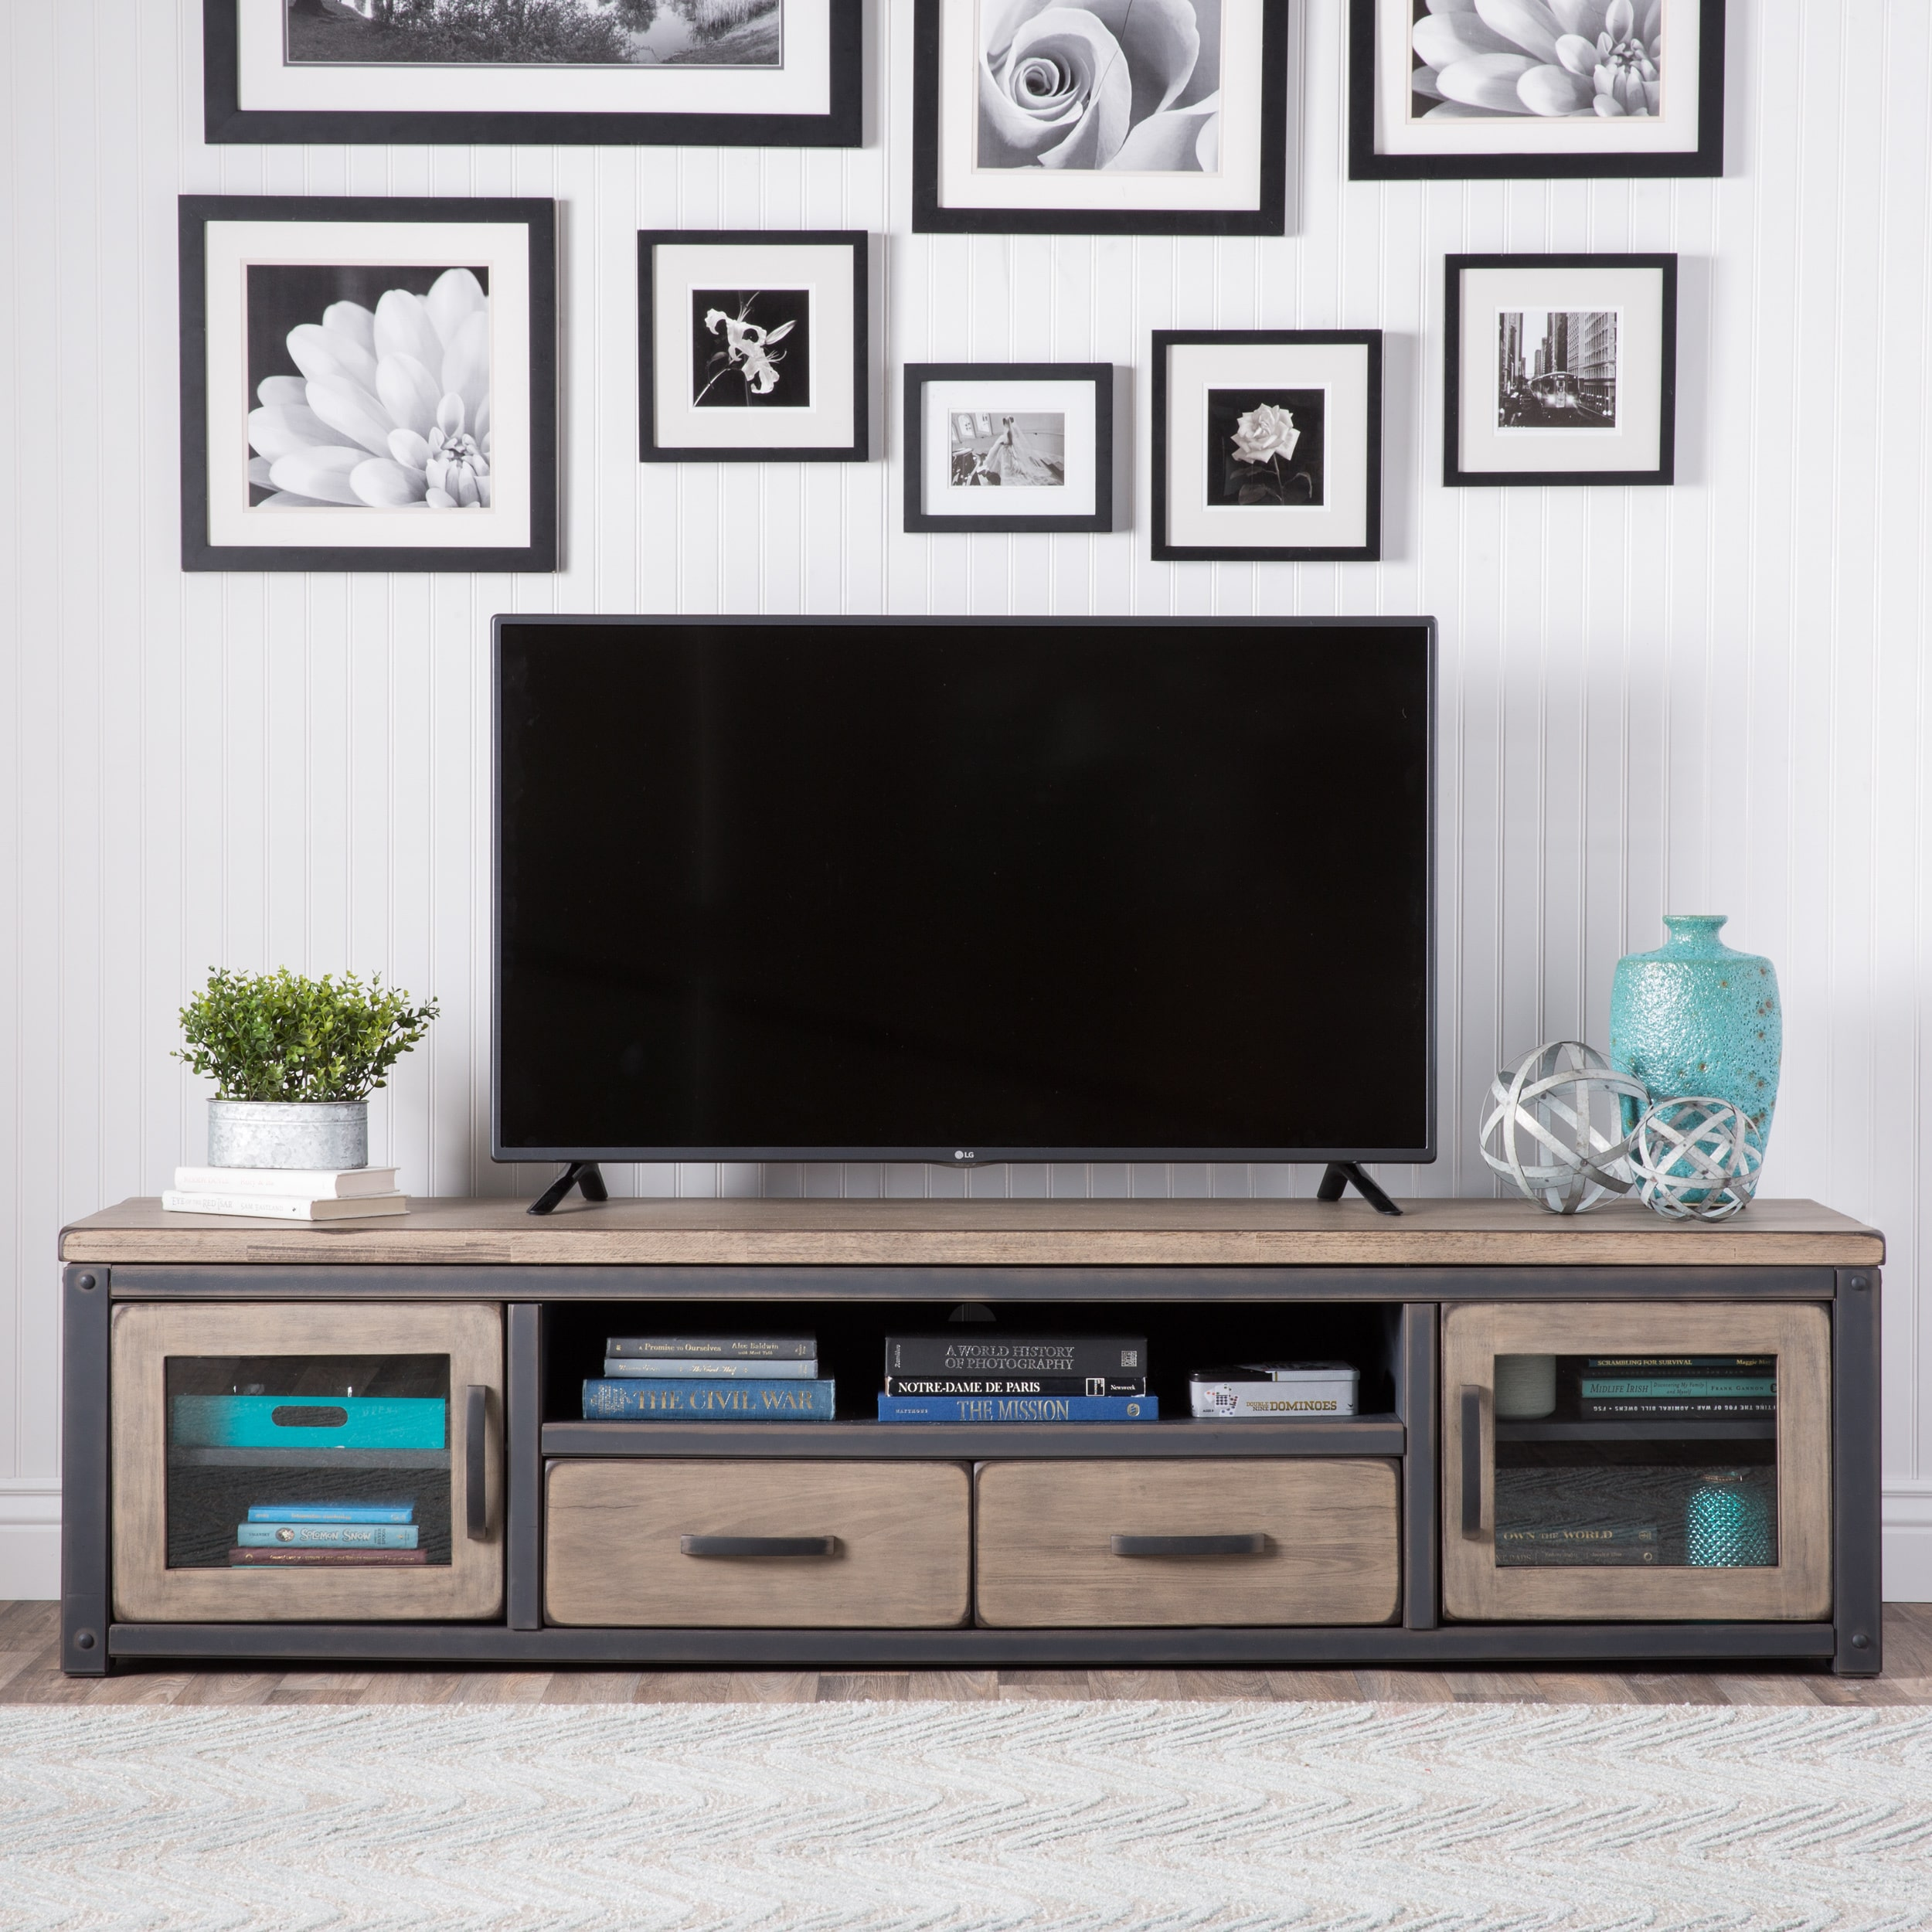 I Love Living Heritage Rustic Entertainment Center